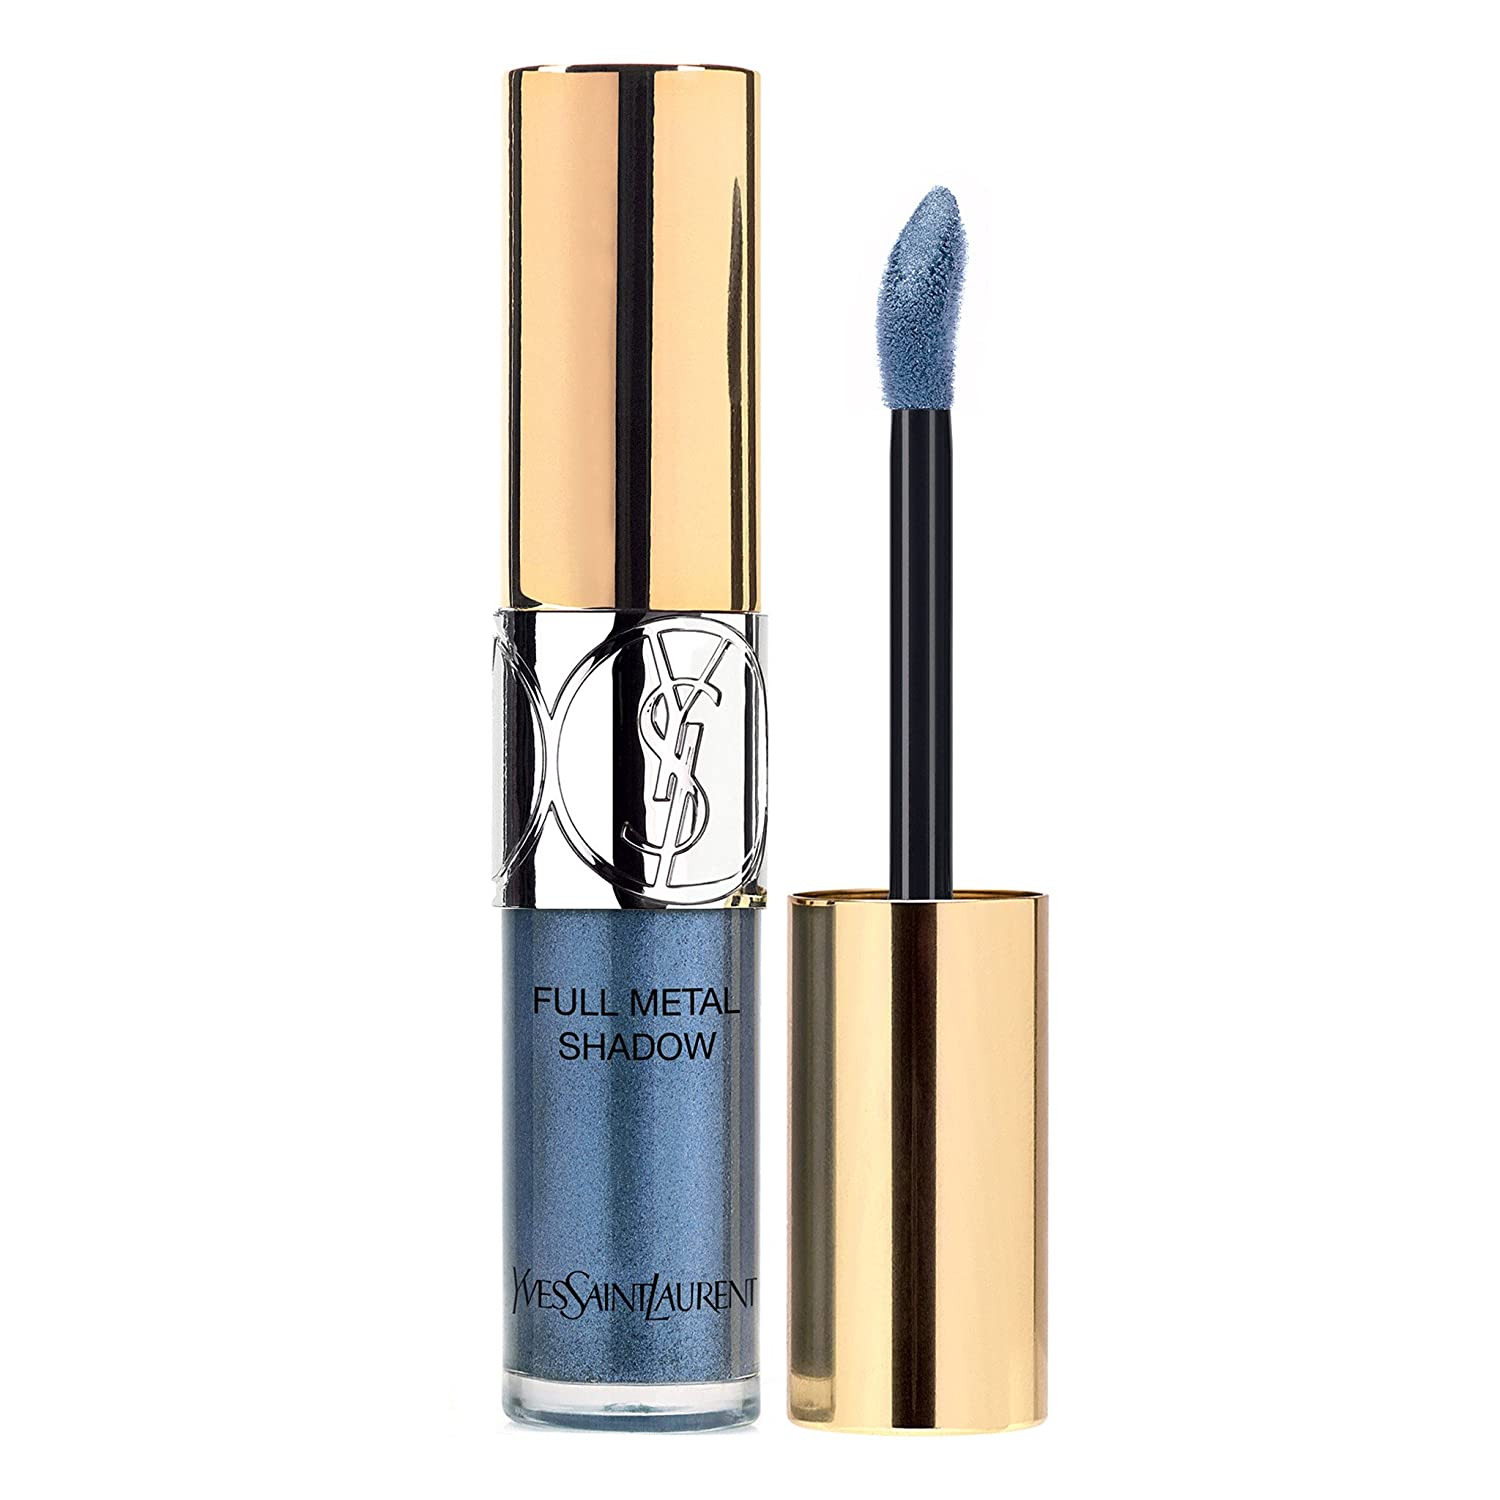 Yves Saint Laurent Full Metal Shadow, 07 Aquatic Copper, 0.15 Ounce